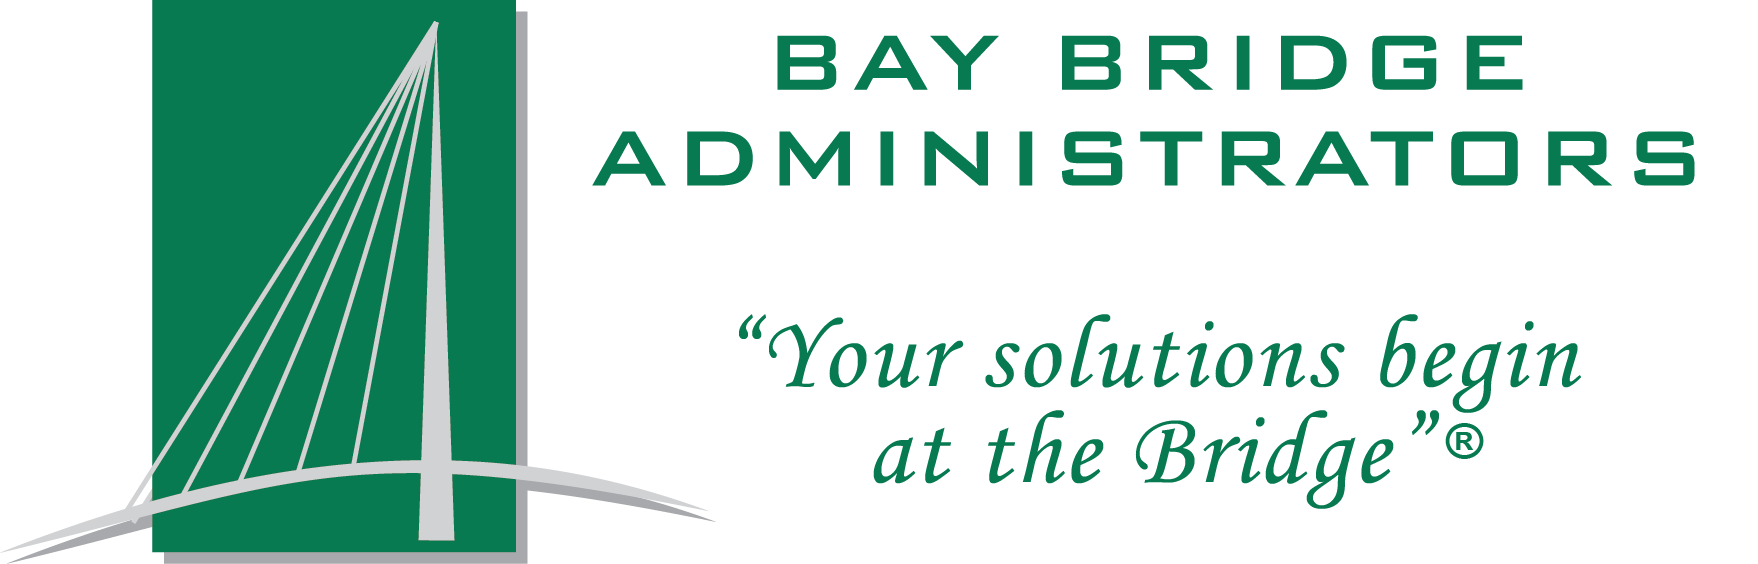 Bay Bridge Administrators